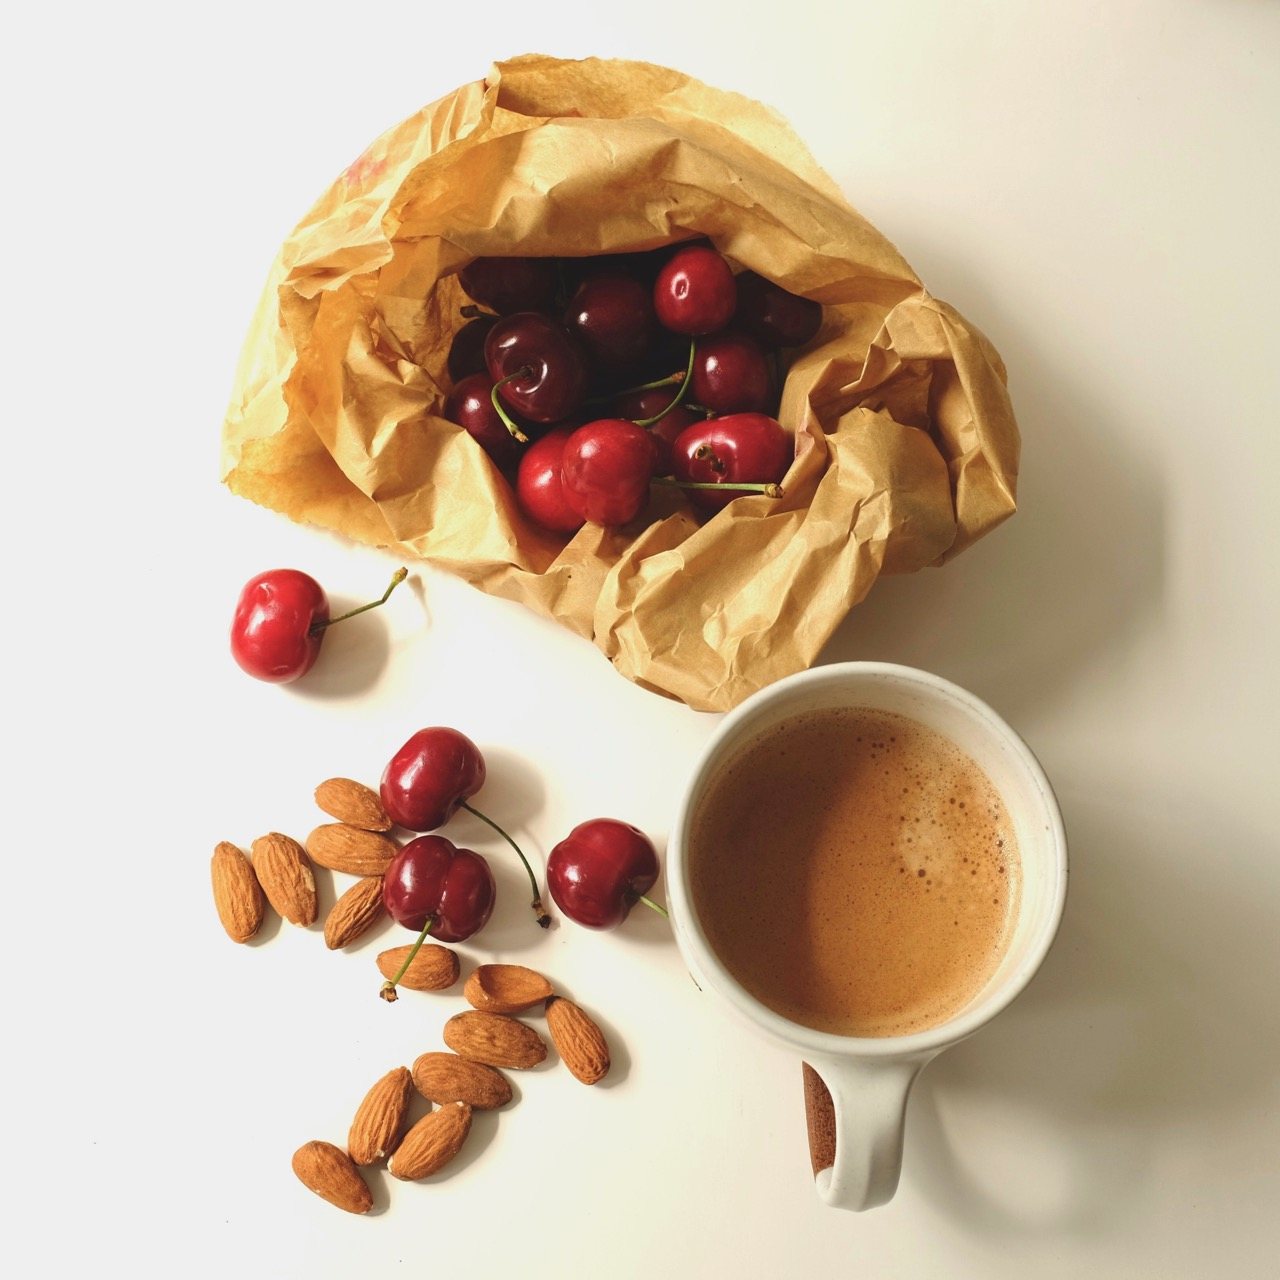 Cherries and coffee